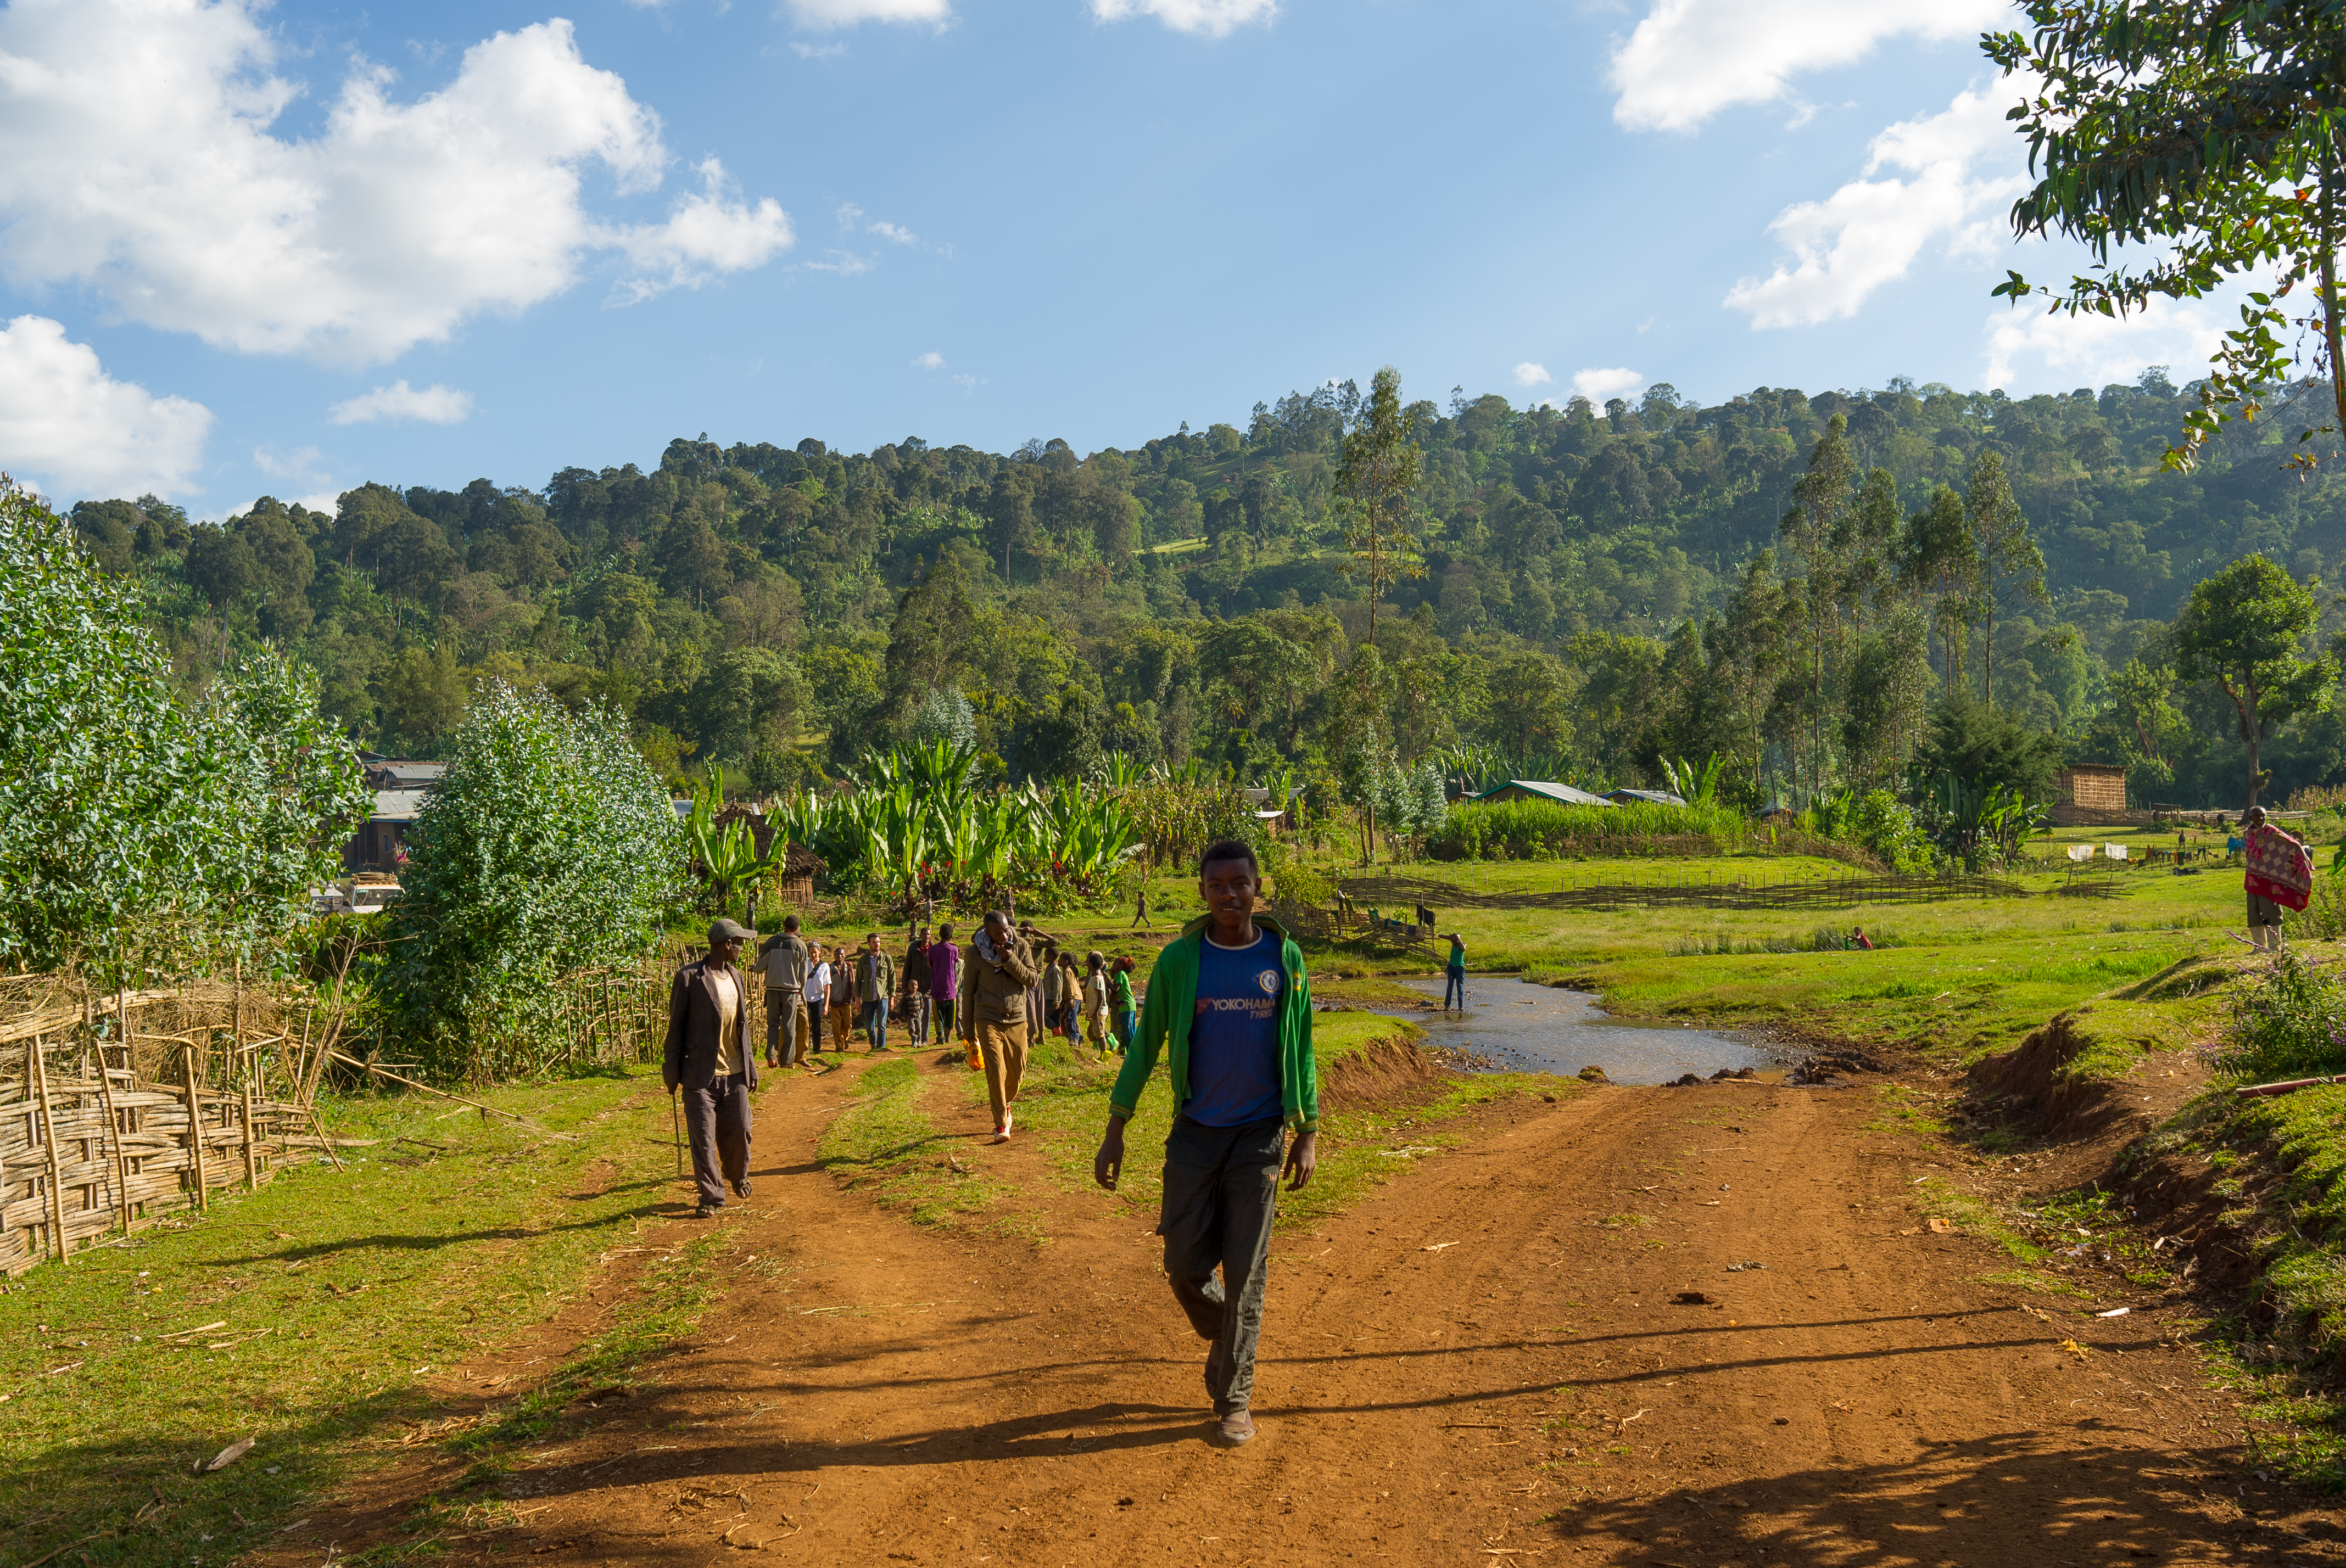 A beautiful scenery stands in contrast to the terrible situation in Ethiopia at the moment